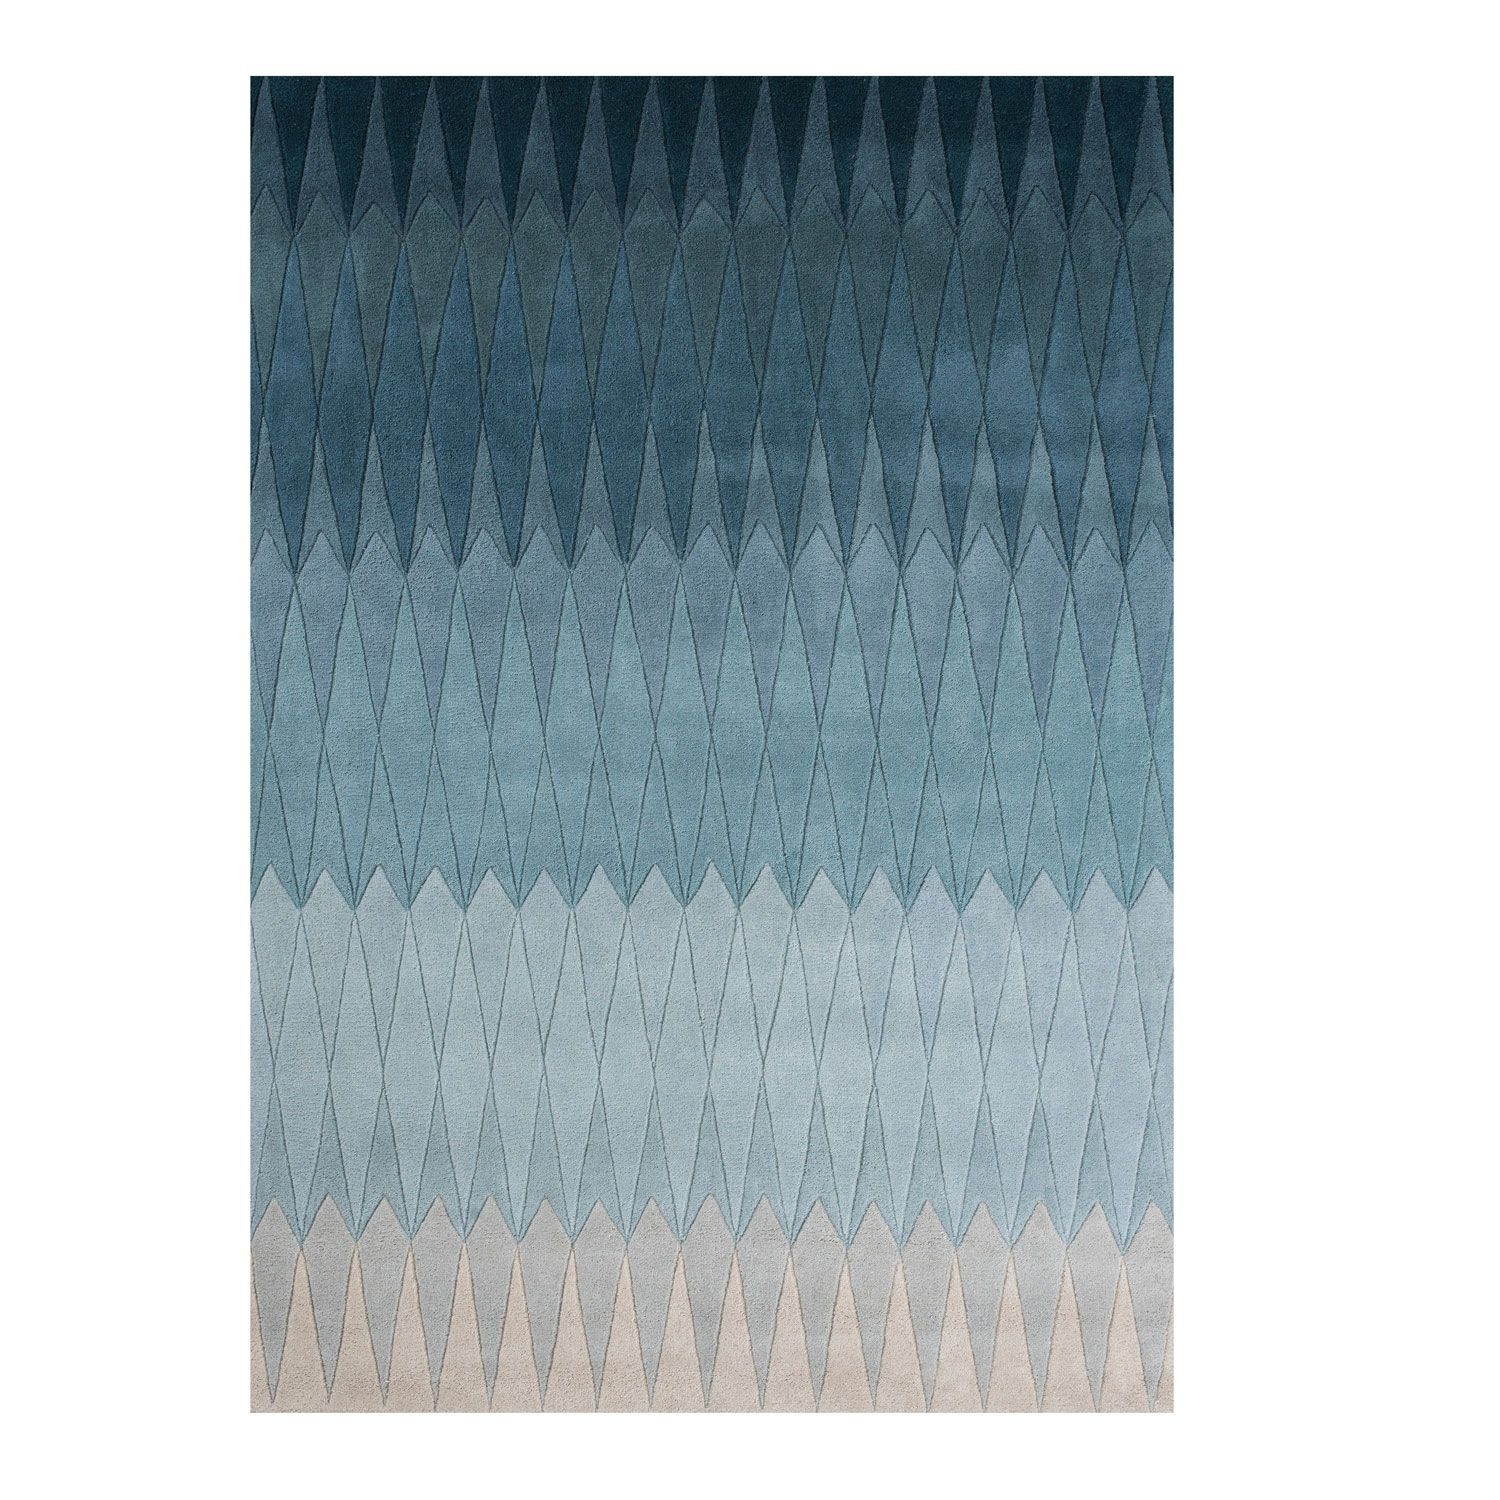 Linie Design Acacia Blue Rug Patterned Rugs